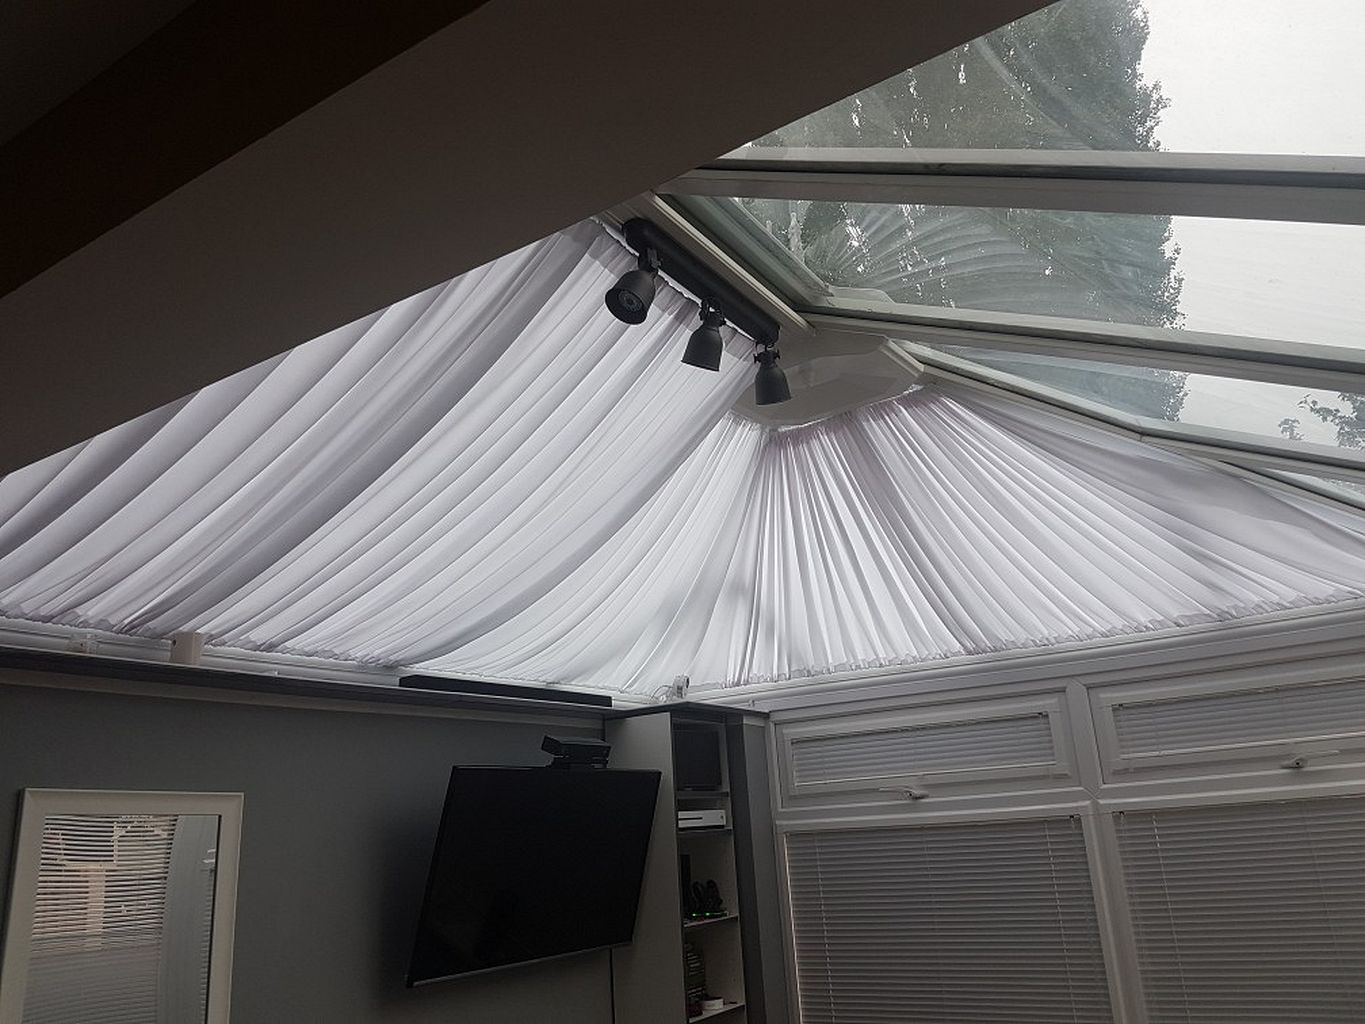 Best 65 Conservatory Windows Inspiration And Idea Https Www Mobmasker Com Conservatory Windows Inspiration Conservatory Roof Blinds Conservatory Roof Blinds